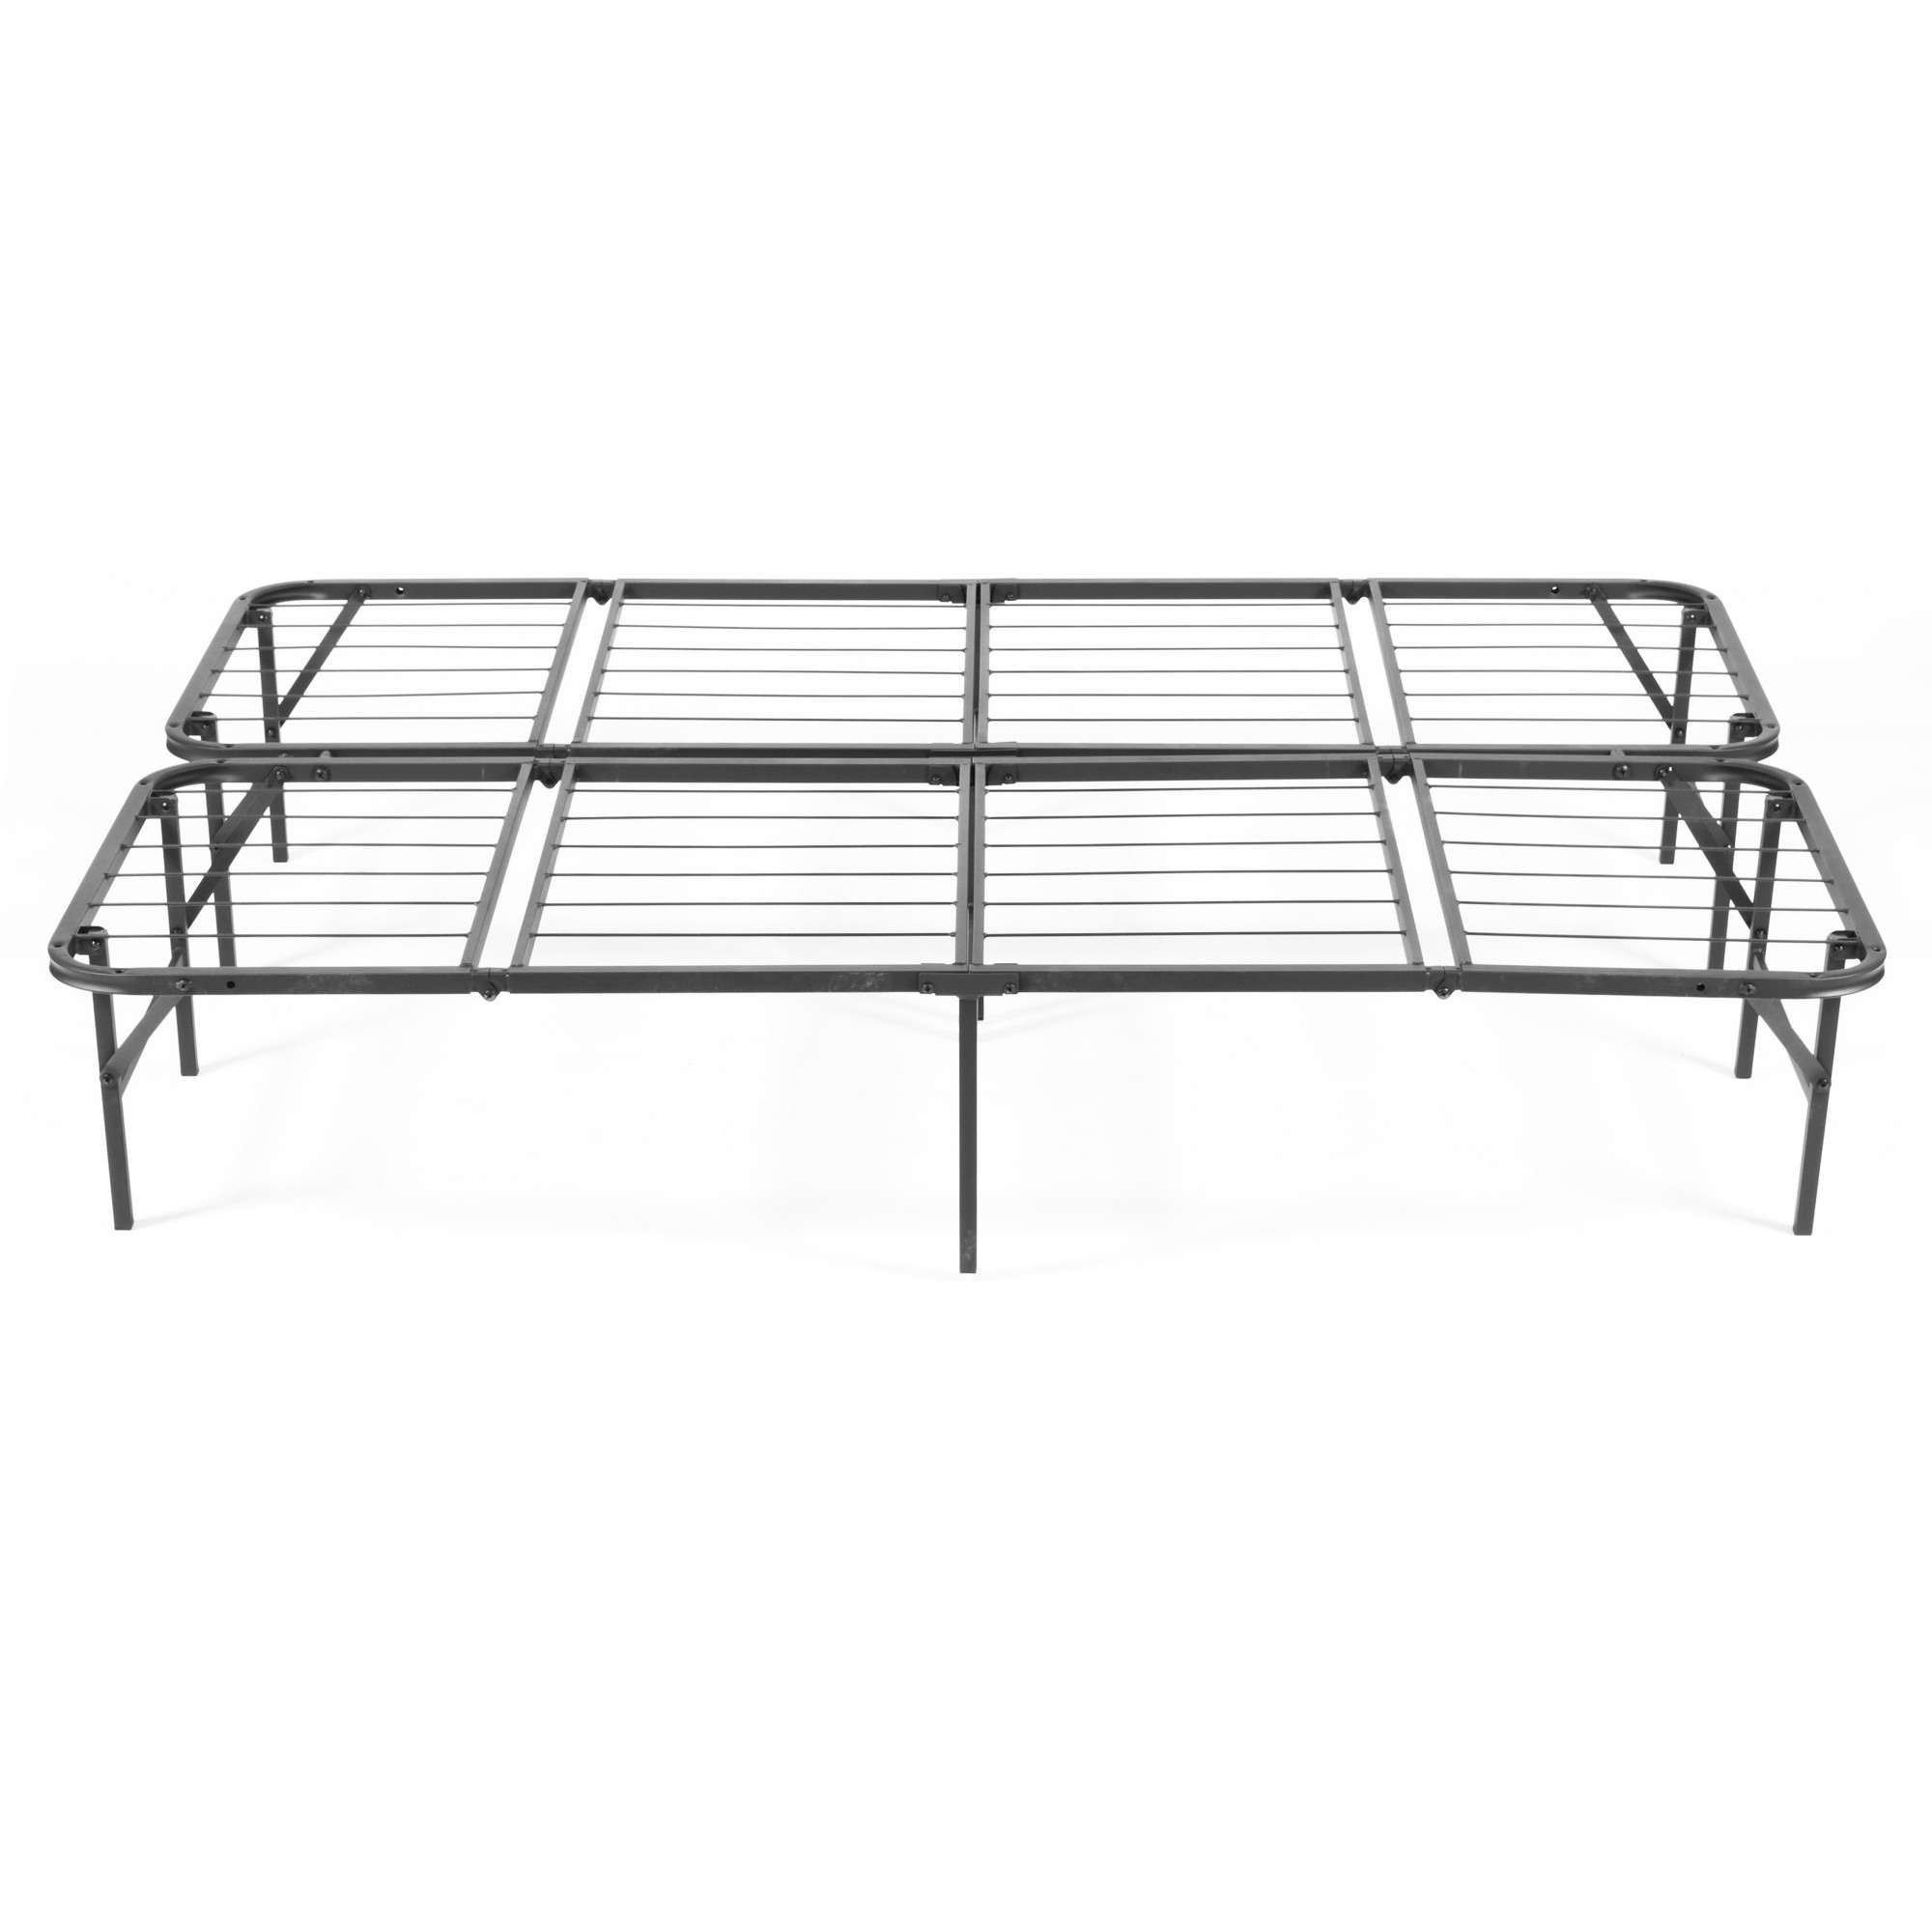 Simple Base QuadFold Bed Frame (California King) Bed